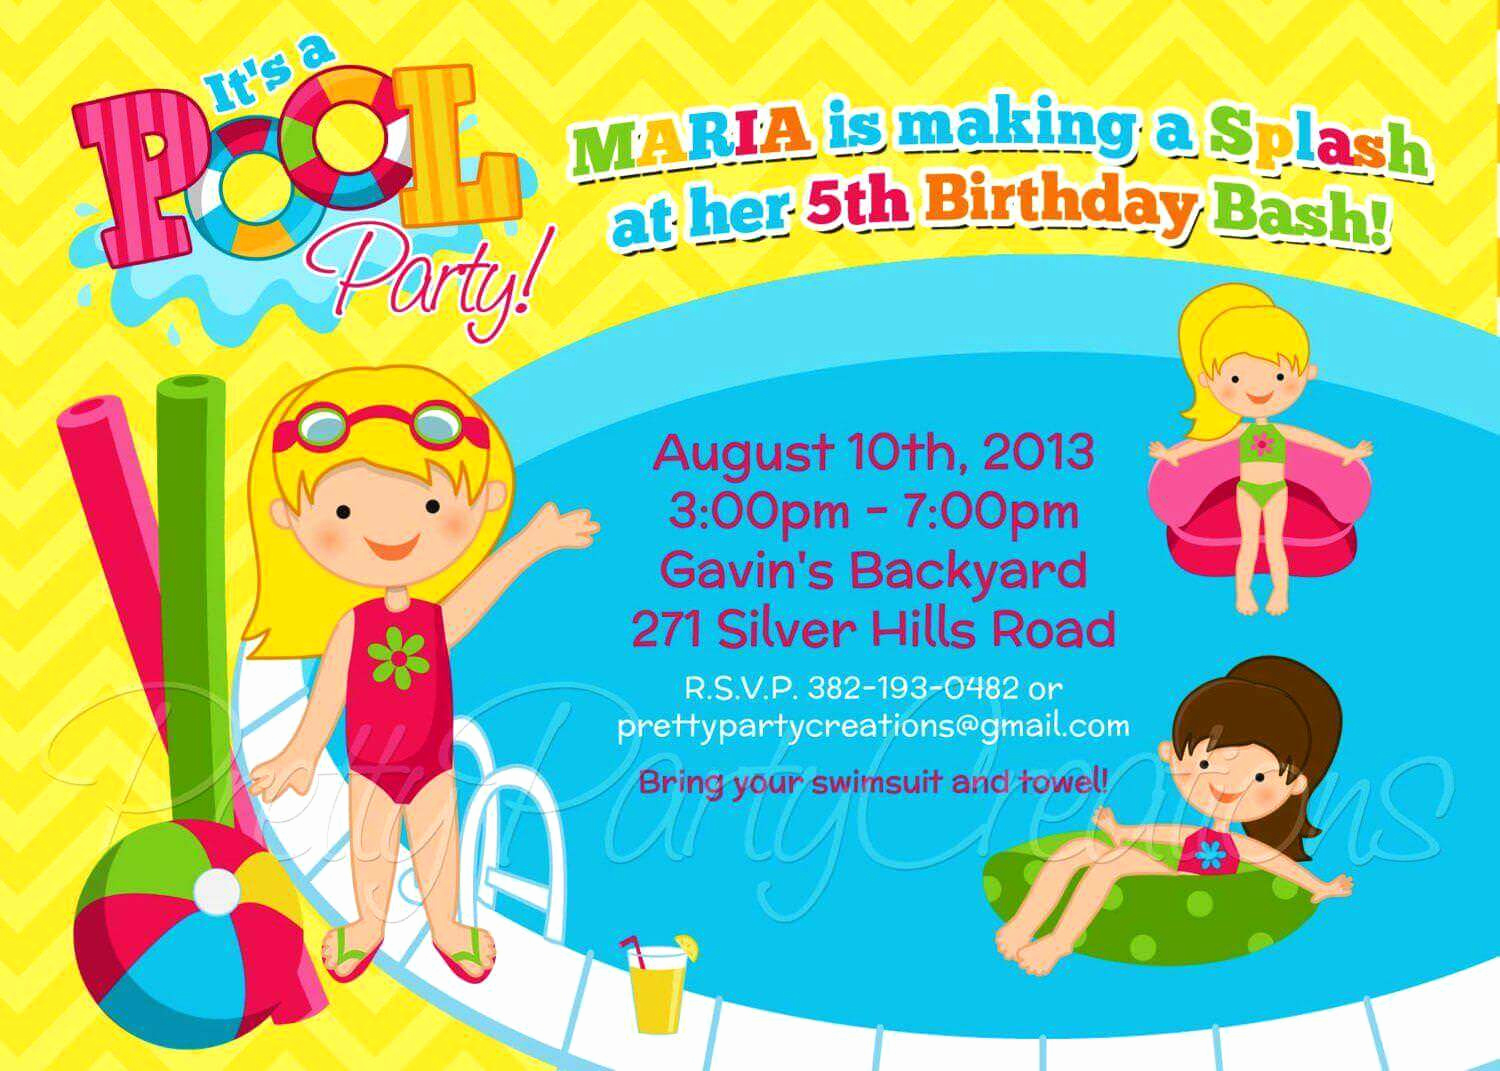 Pool Party Invitation Ideas Luxury Pool Party Invitation Ideas